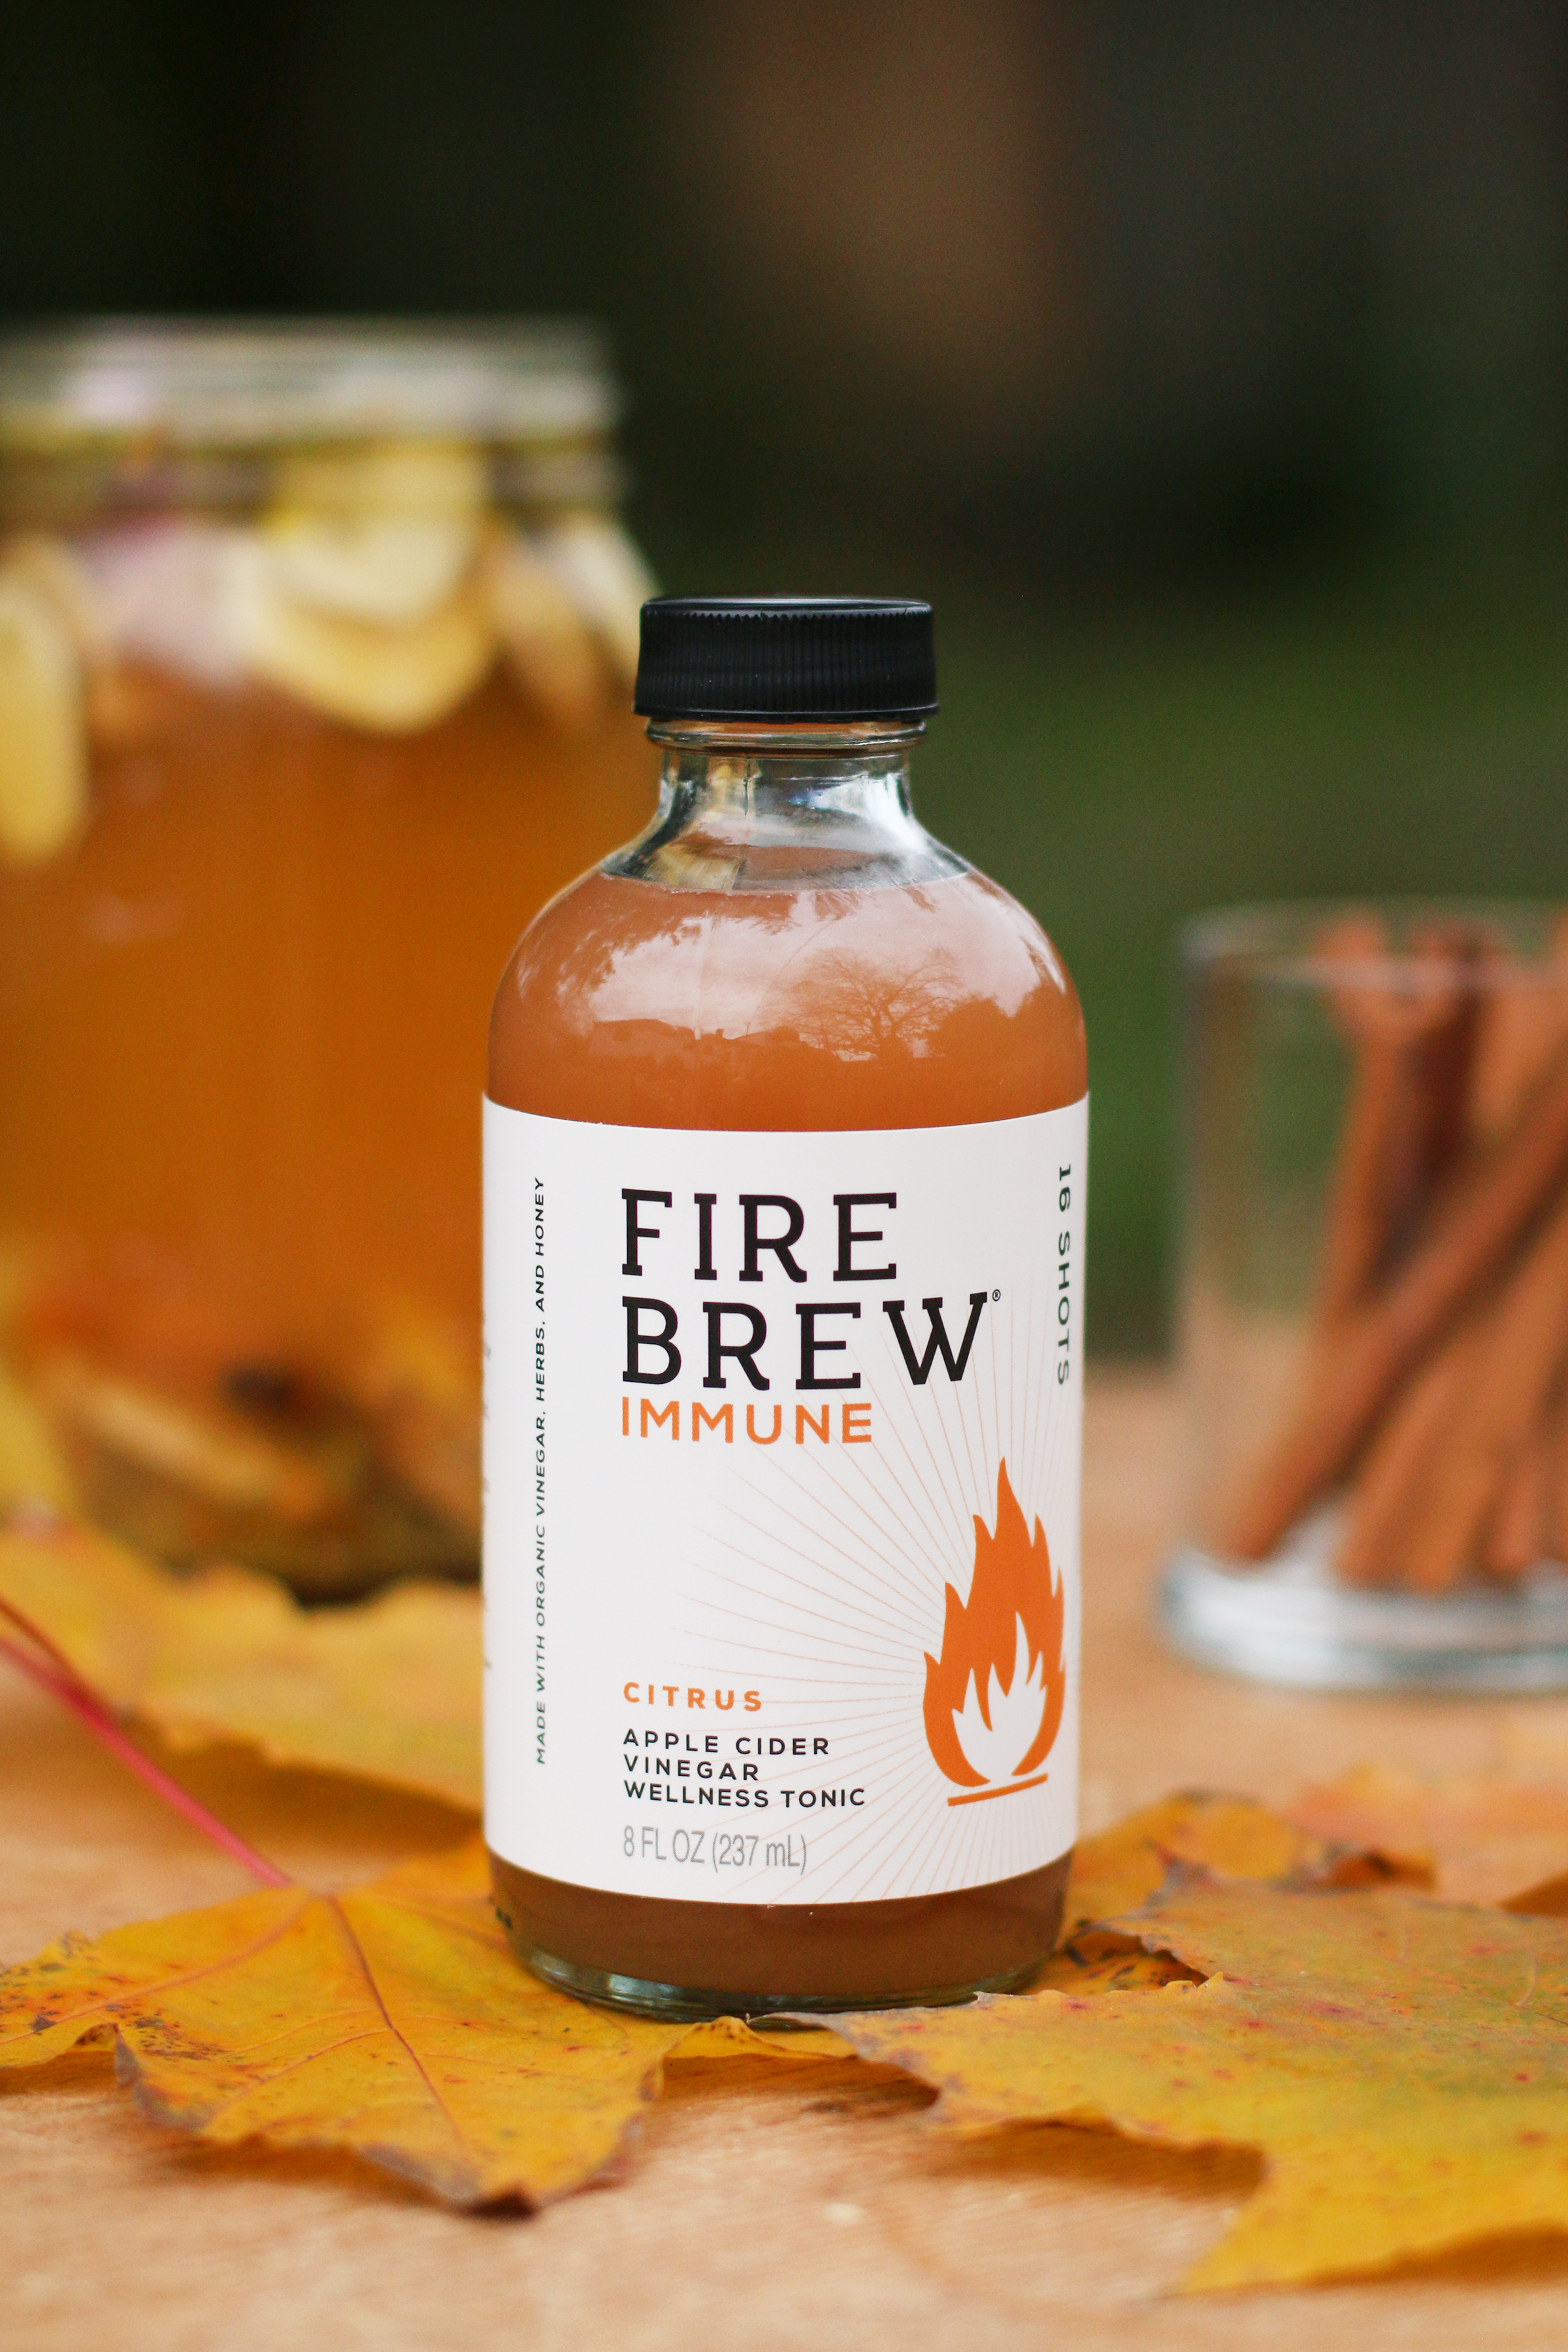 Fire-Brew-fire-cider-in-bottle-with-cinnamon-sticks-and-fall-colors